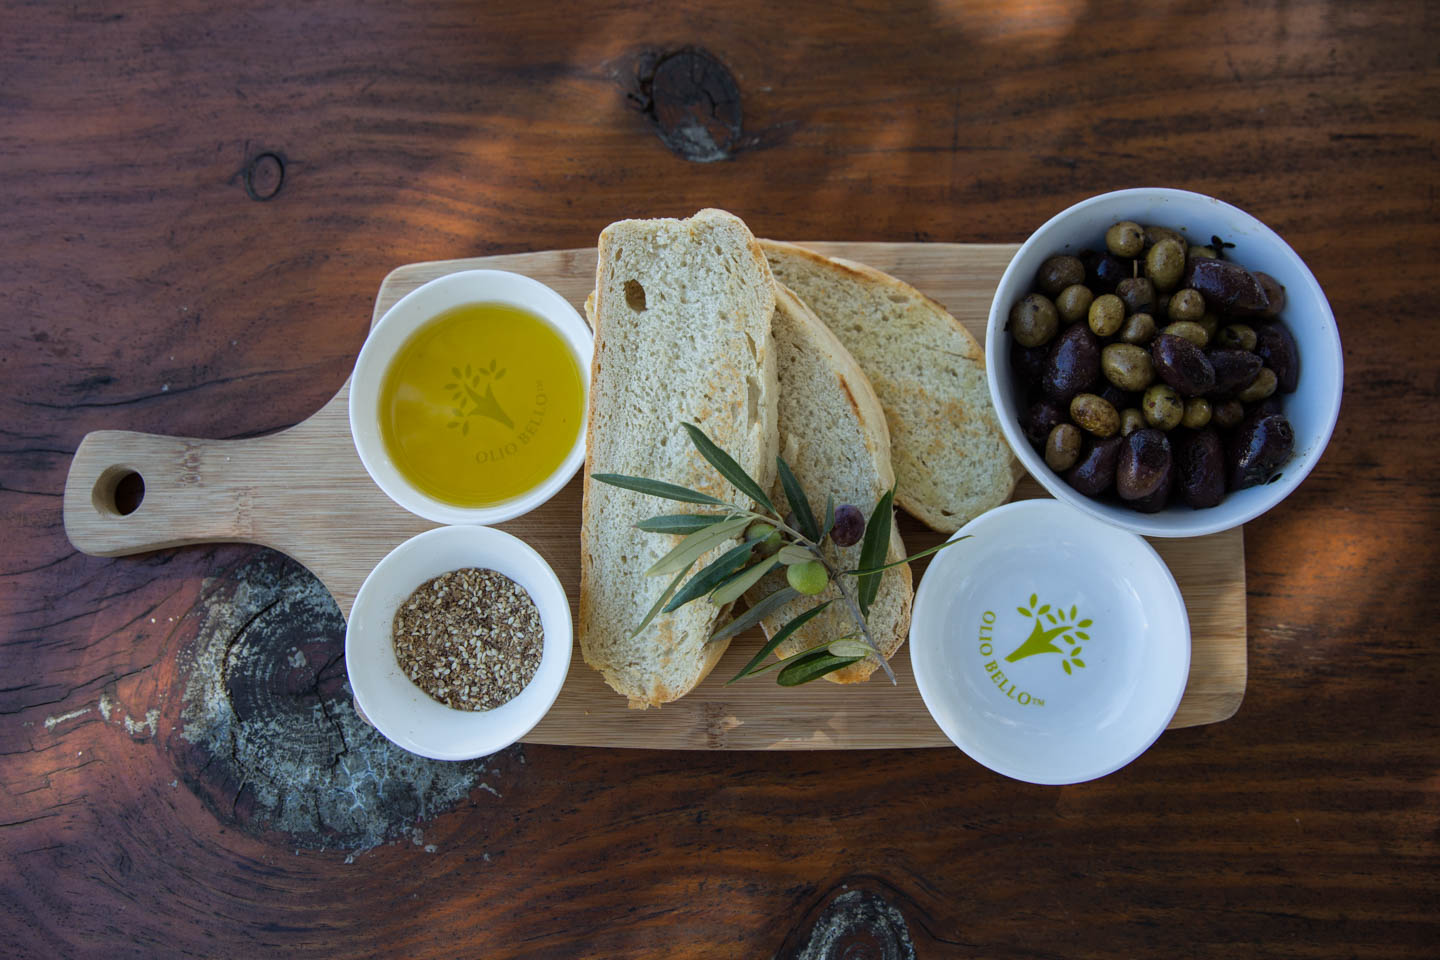 Premium olive oil with warmed olives and house baked bread